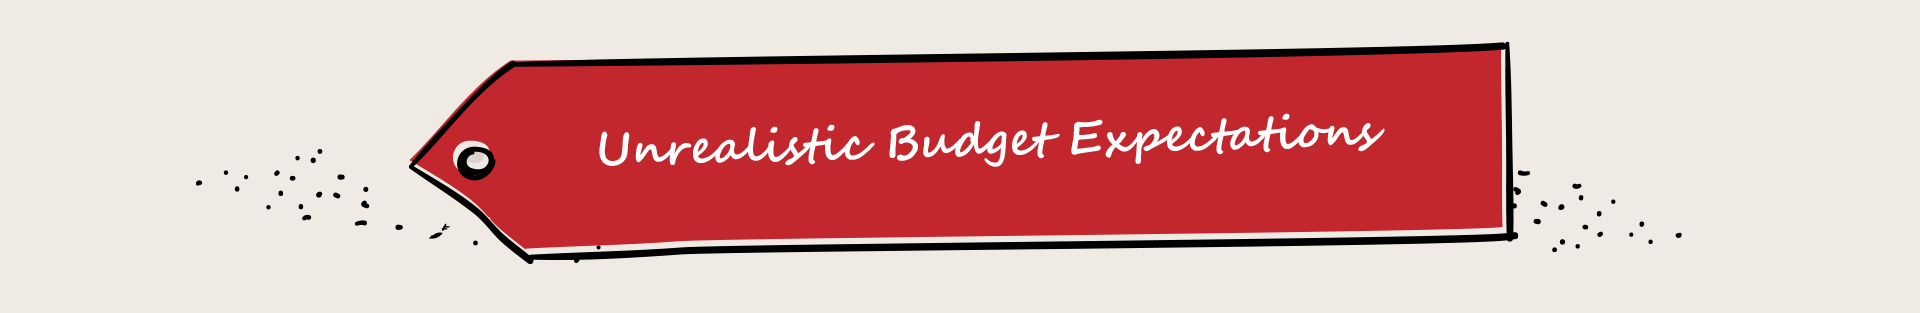 Unrealistic Budget Expectations